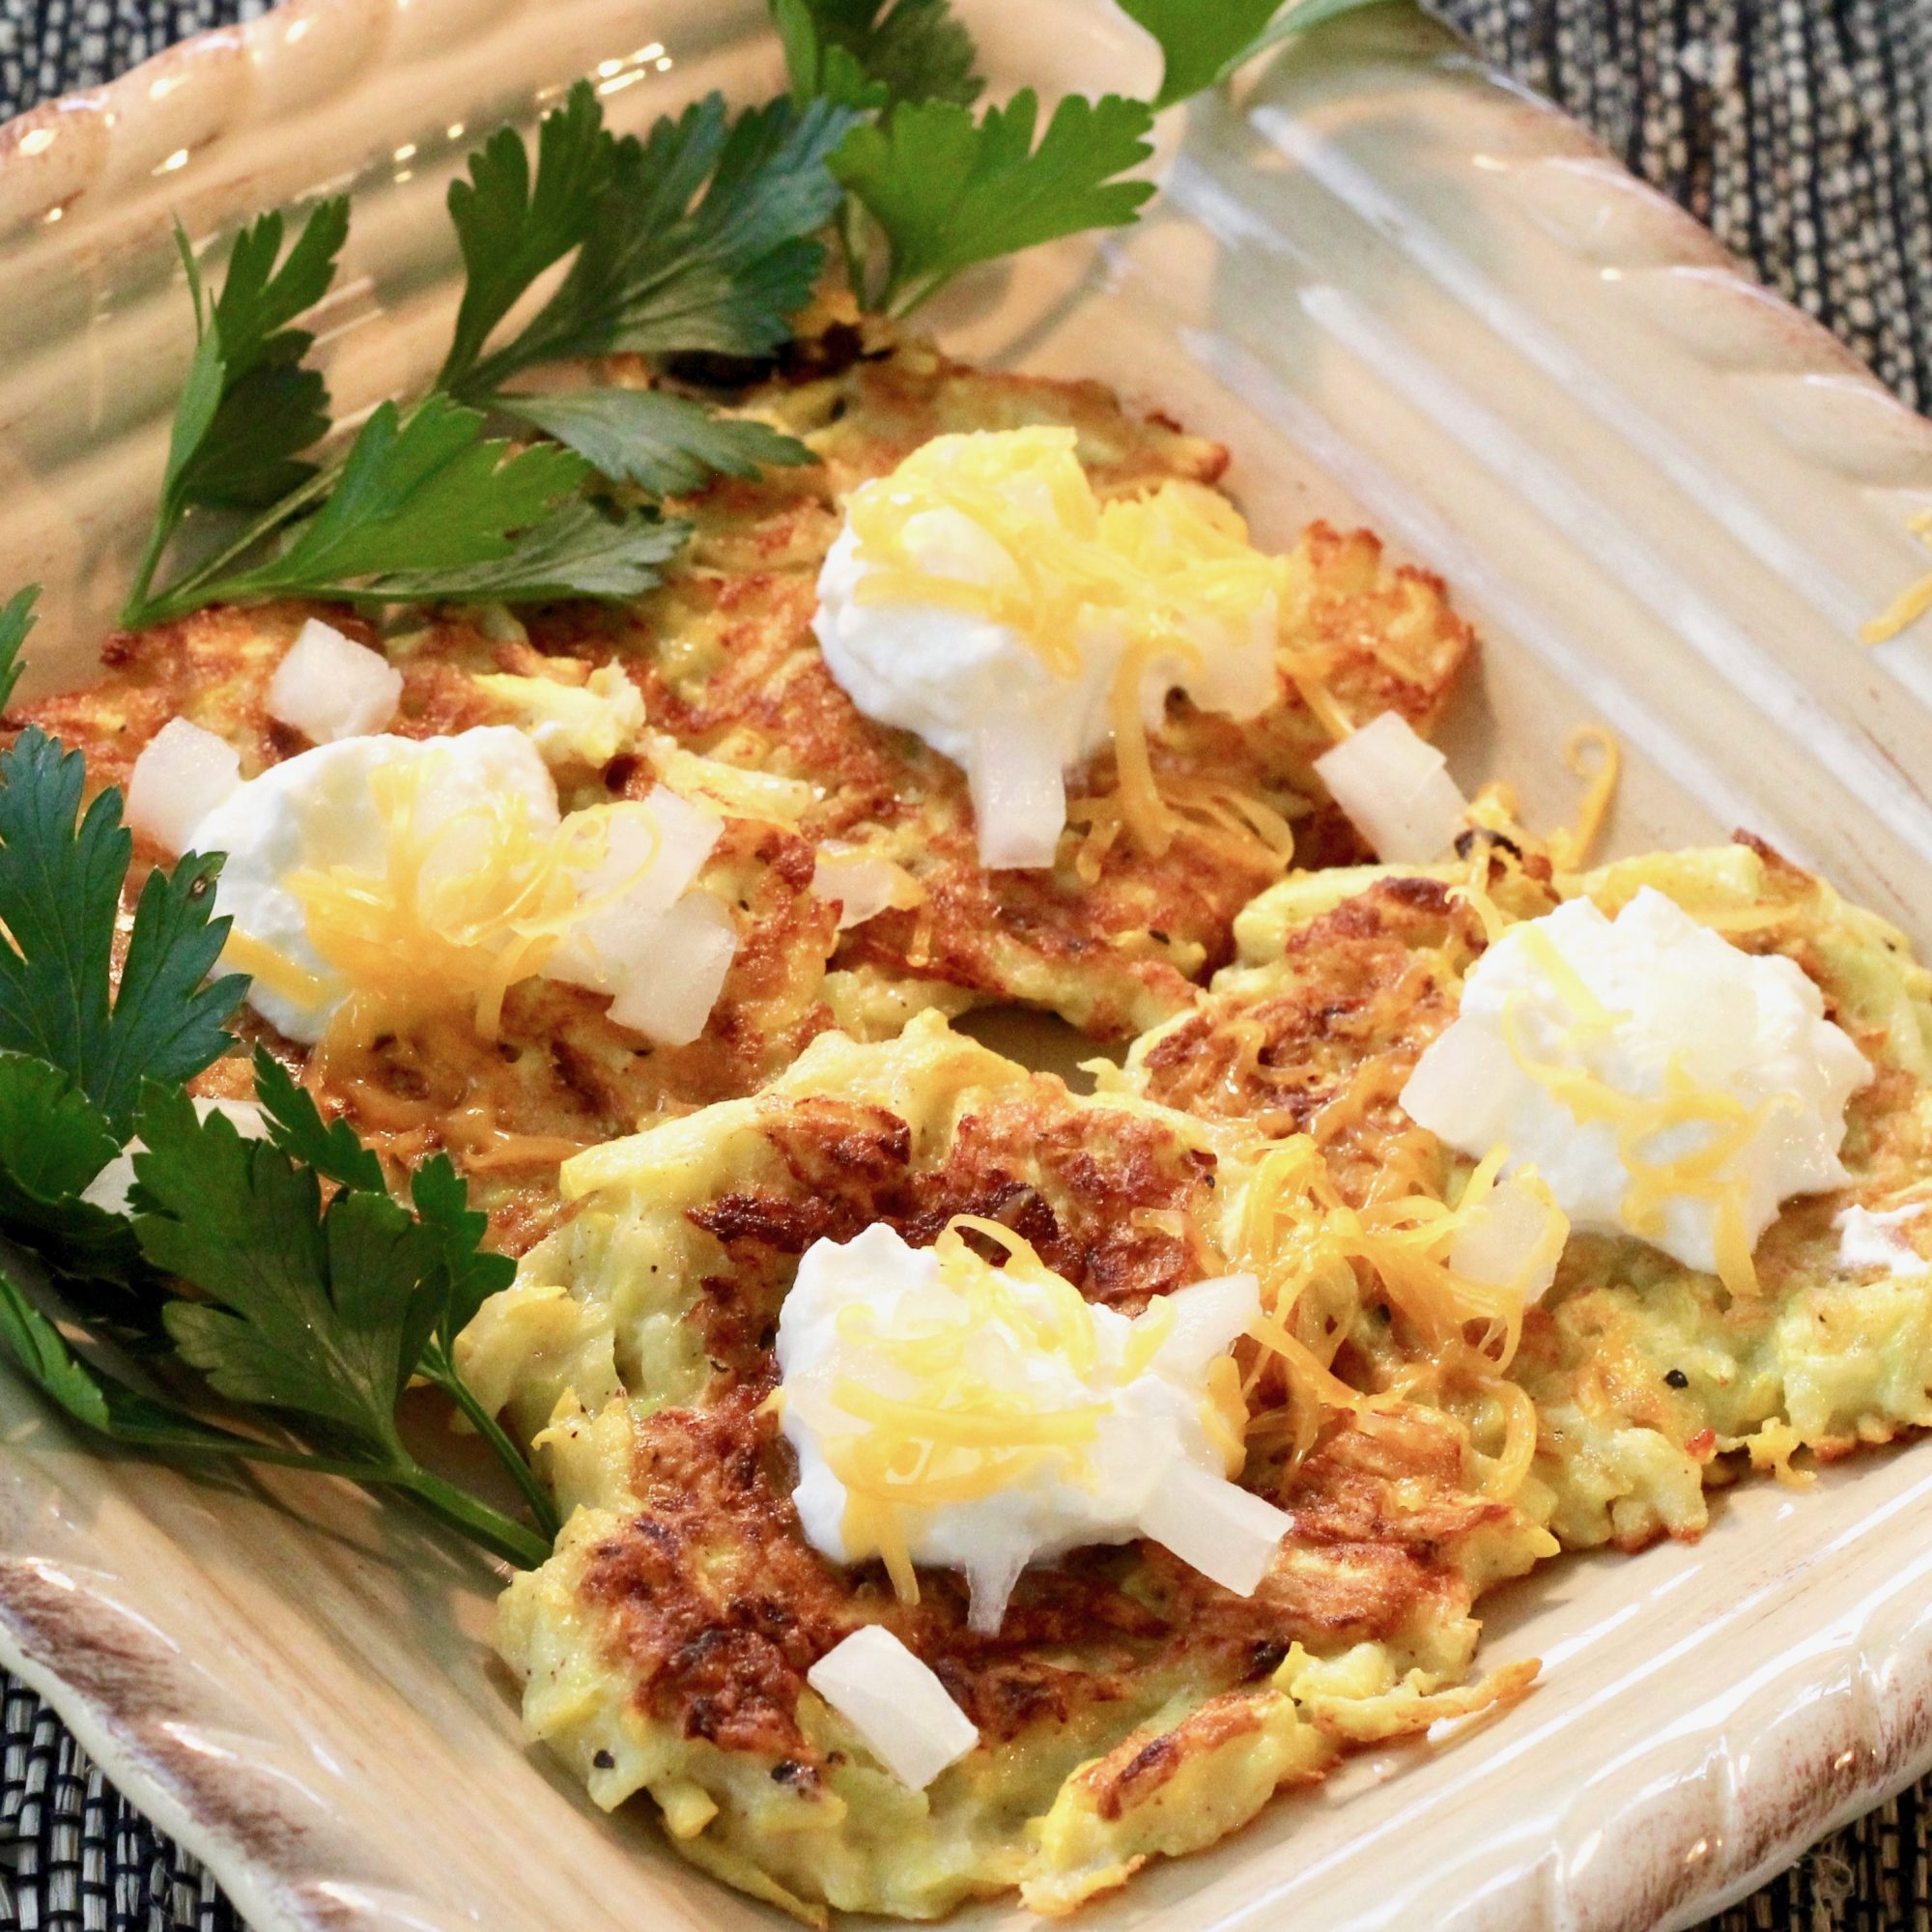 """""""This is a fast and easy snack or lunch idea,"""" Janet Shytle says. """"They are so crispy that they're addictive. This is a great way to use the abundance of squash at the end of the season. There are so many vitamins in this, but the kids will only know how good they are."""""""